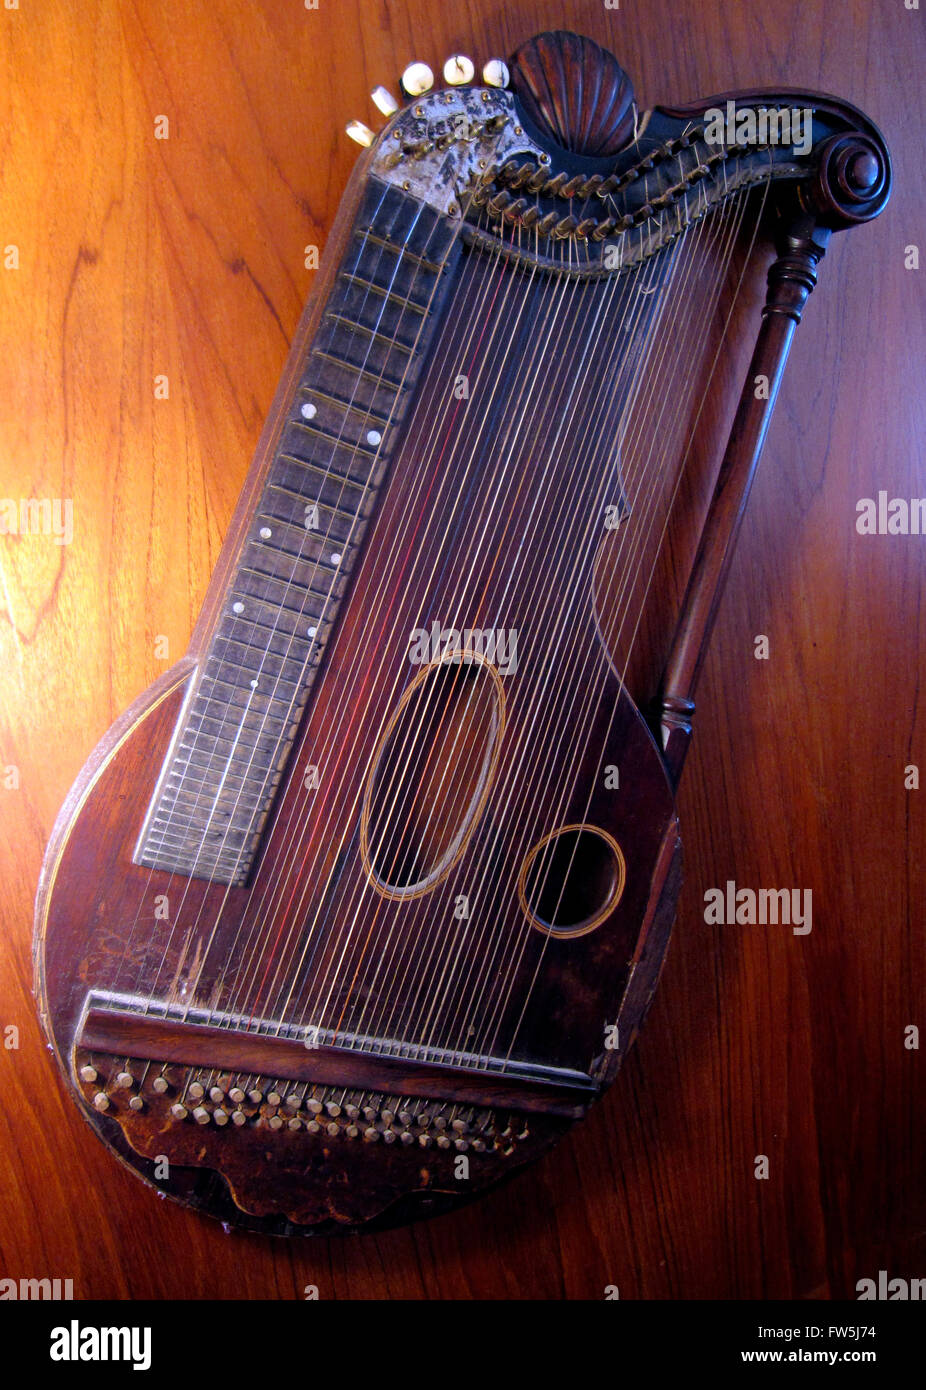 Austrian concert zither, mid nineteenth century. 5 stopped strings and 32 unstopped, plucked string instrument often - Stock Image